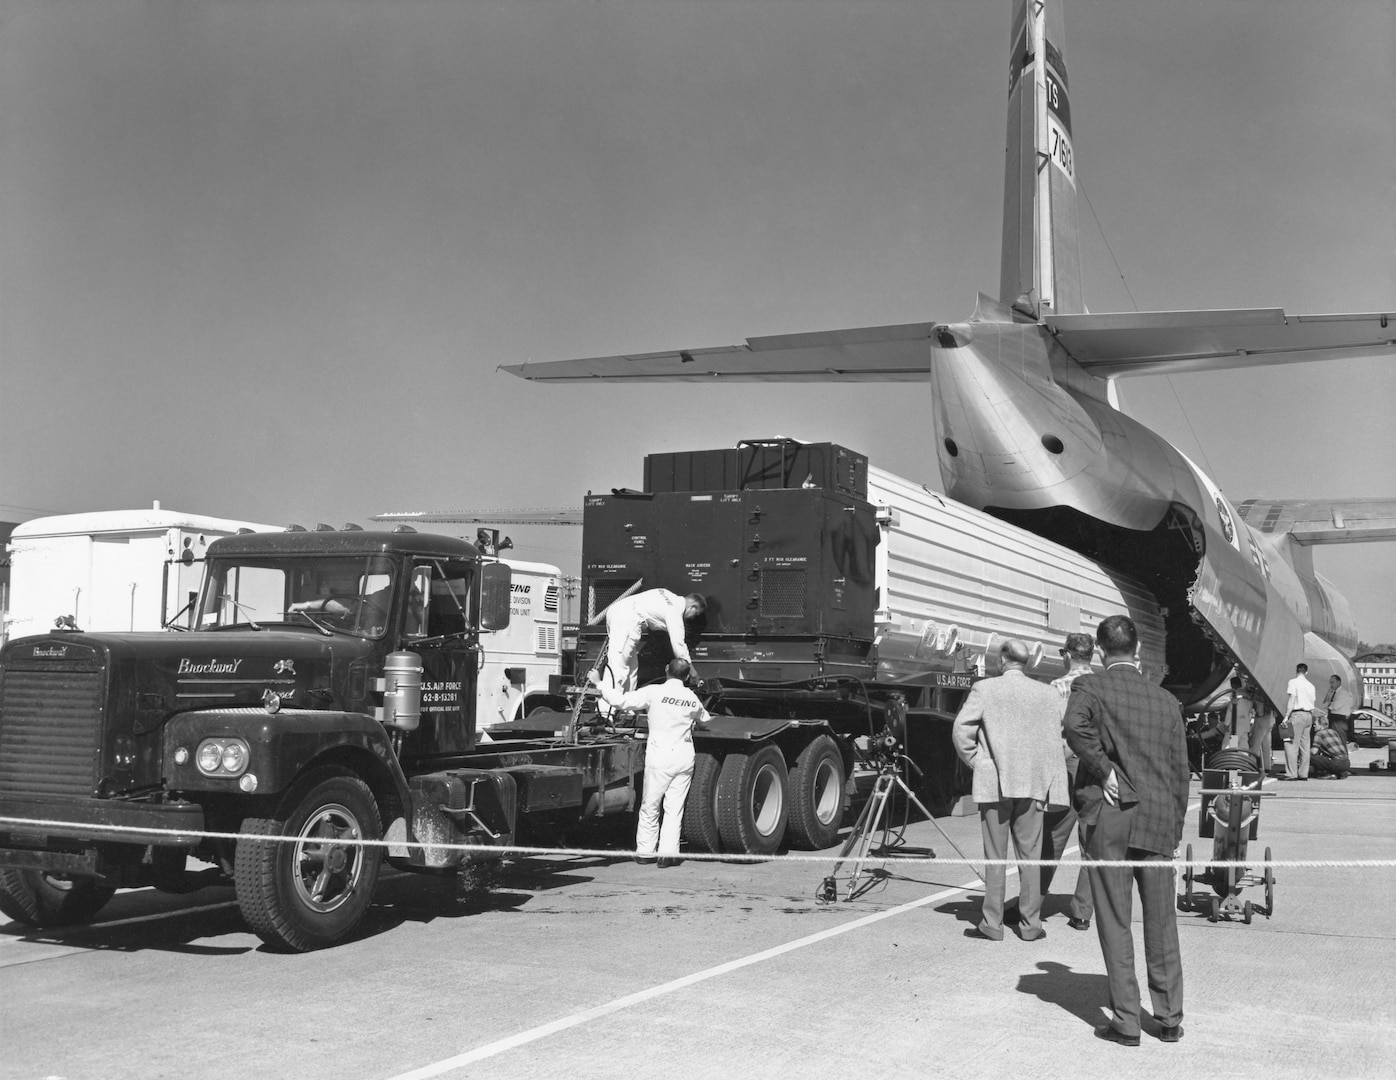 Personnel loading a Minuteman missile into the back of a C-133B aircraft.